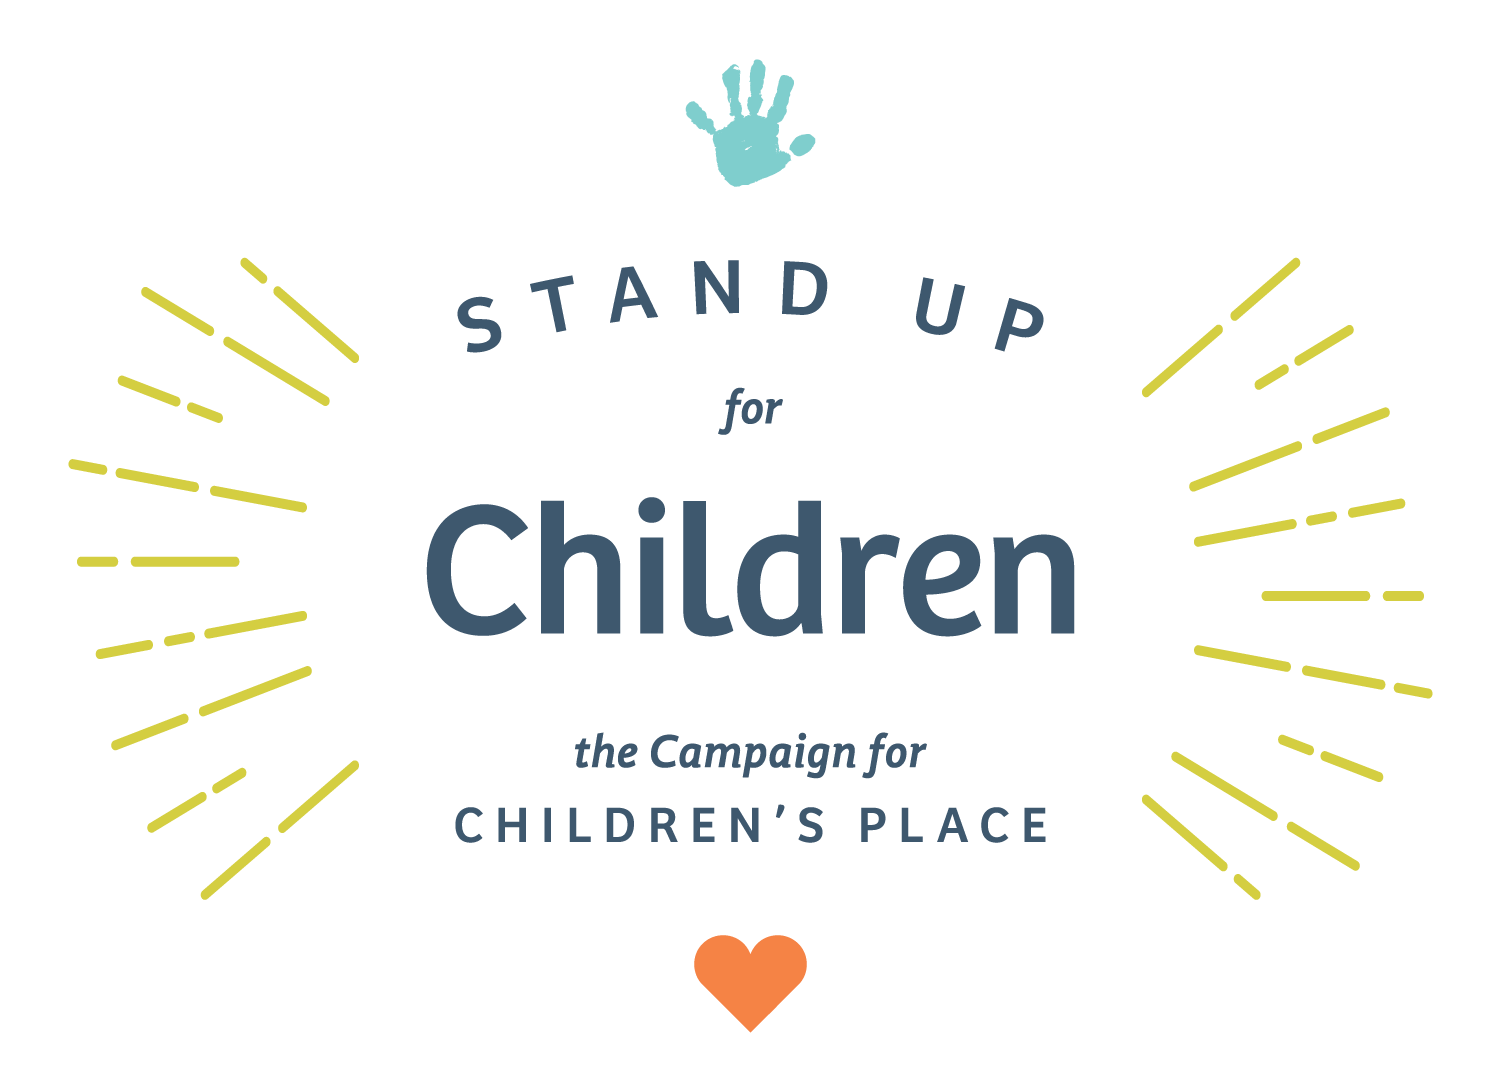 Stand Up for Children - the campaign for Children's Place, Inc.